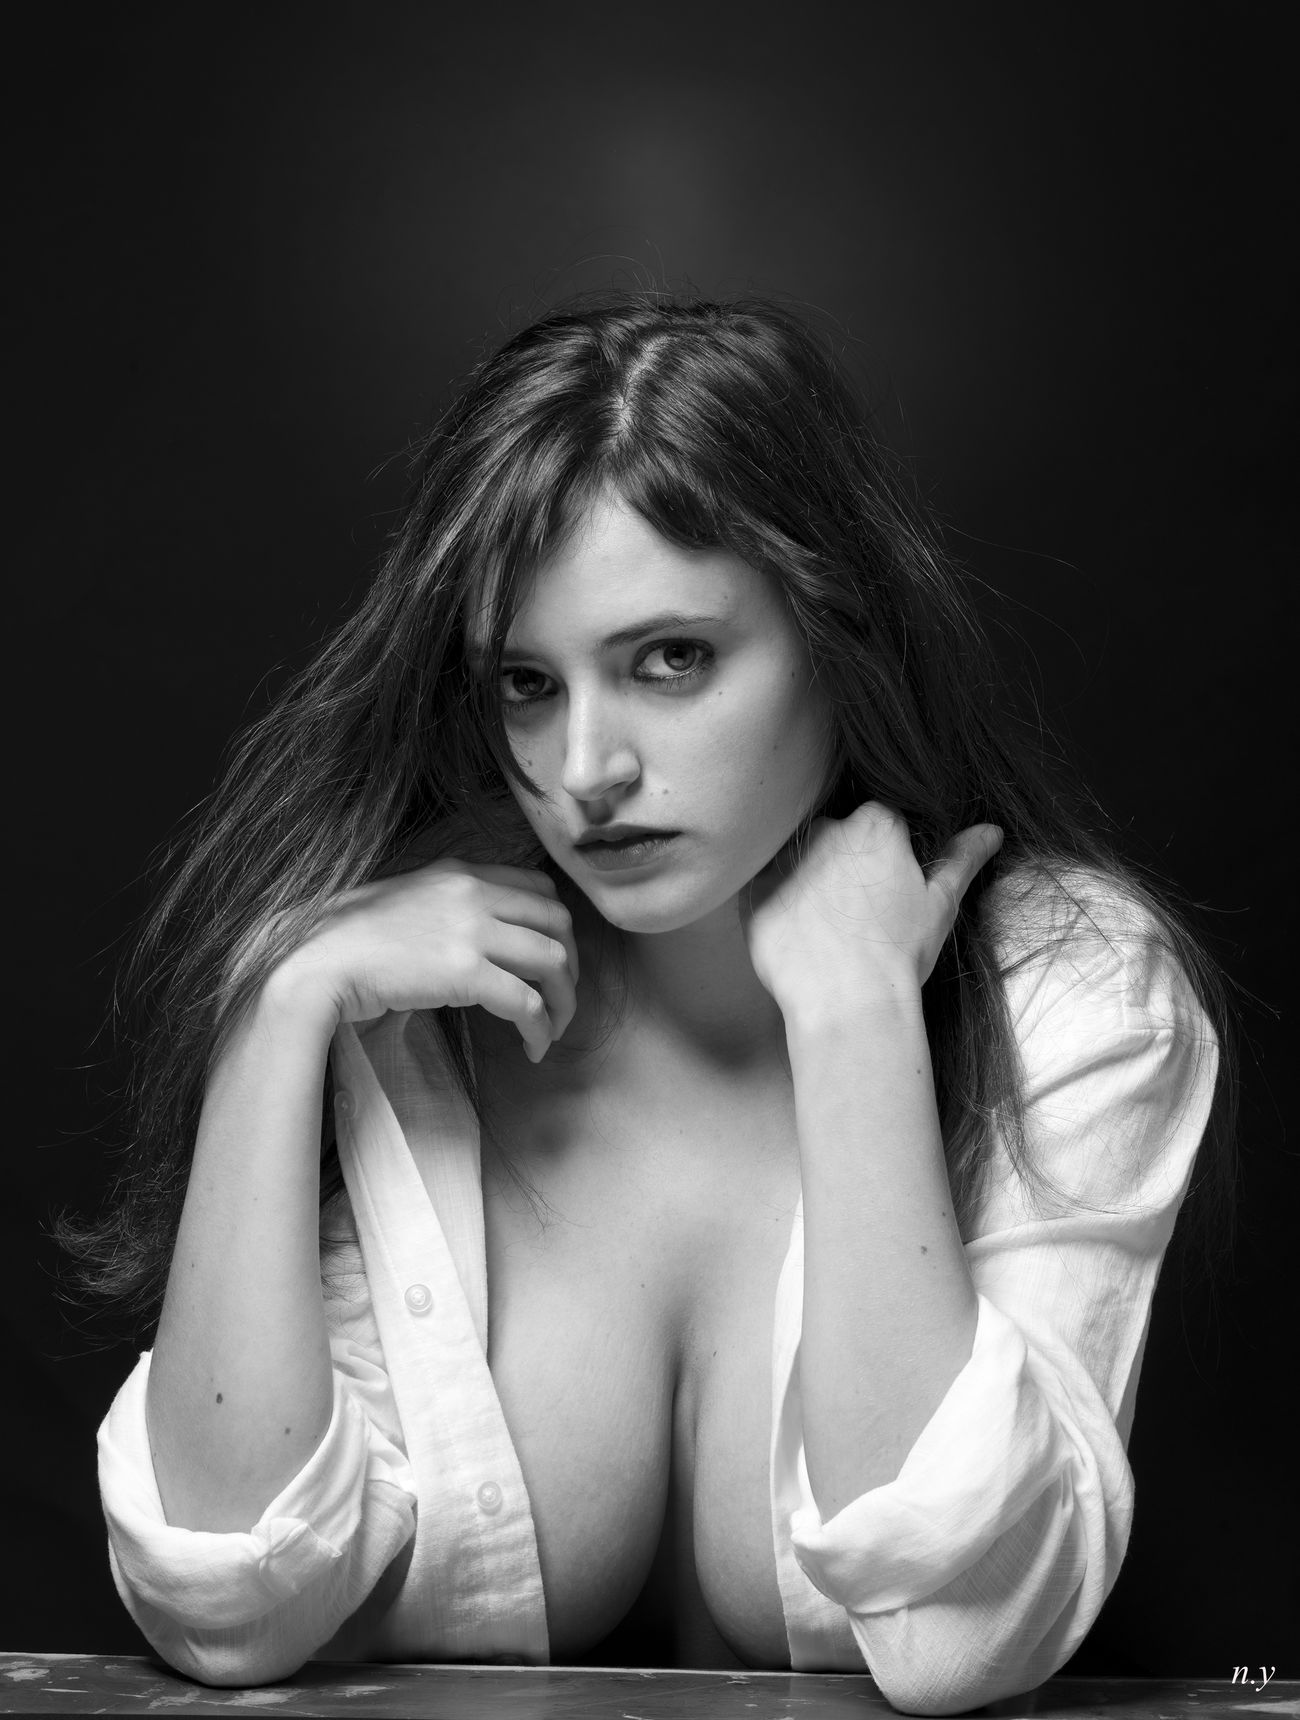 Blackandwhite Portrait B&W Portrait Sensual_woman Cute Studio Photography Fashion&love&beauty Seductive Lingerie Aubade